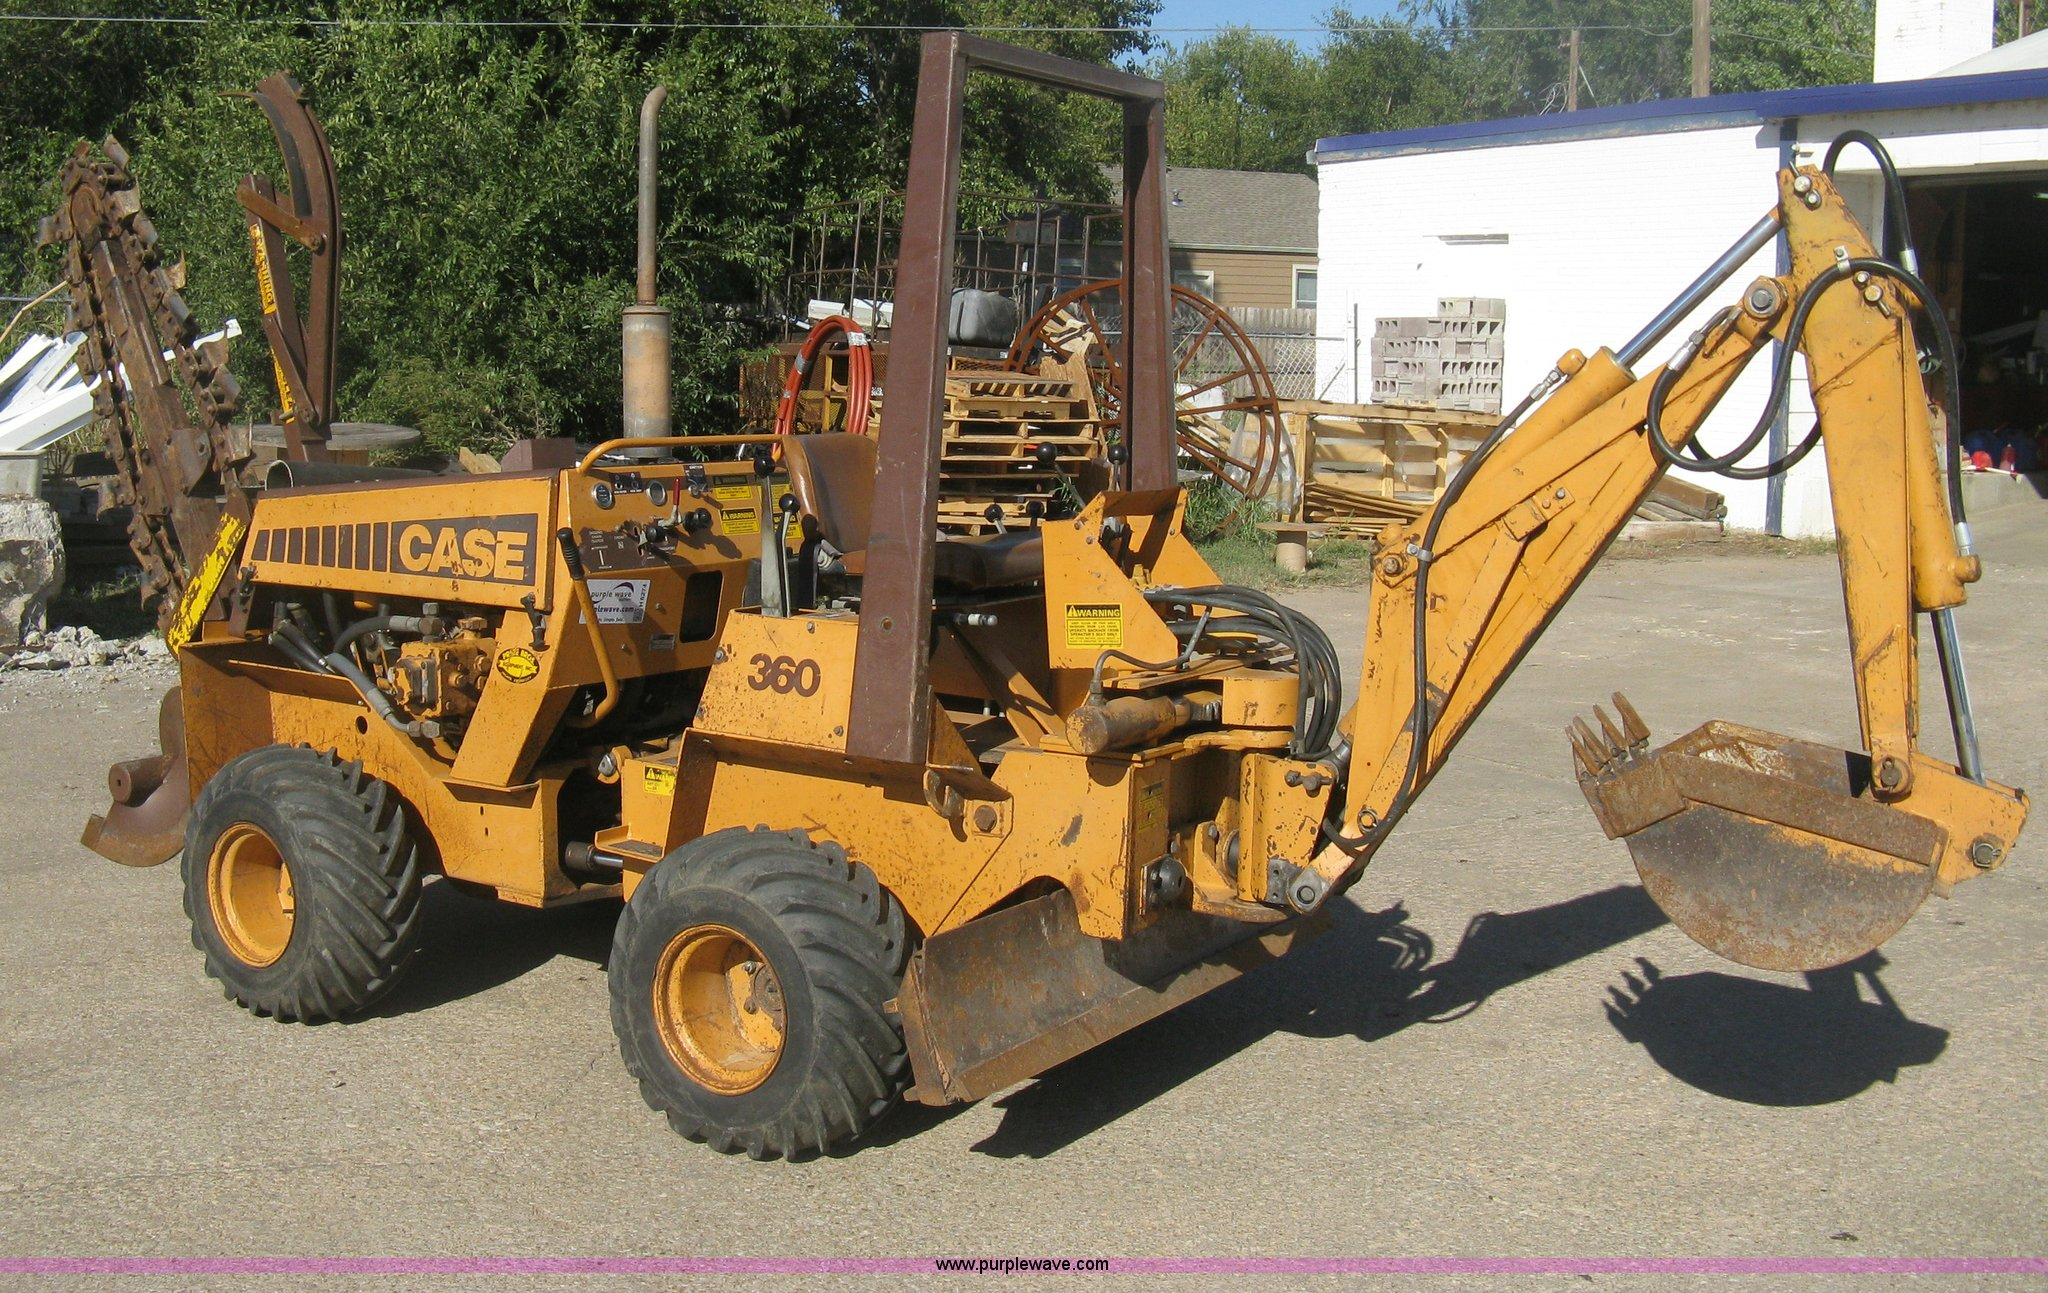 H6274 image for item H6274 1988 Case 360 trencher